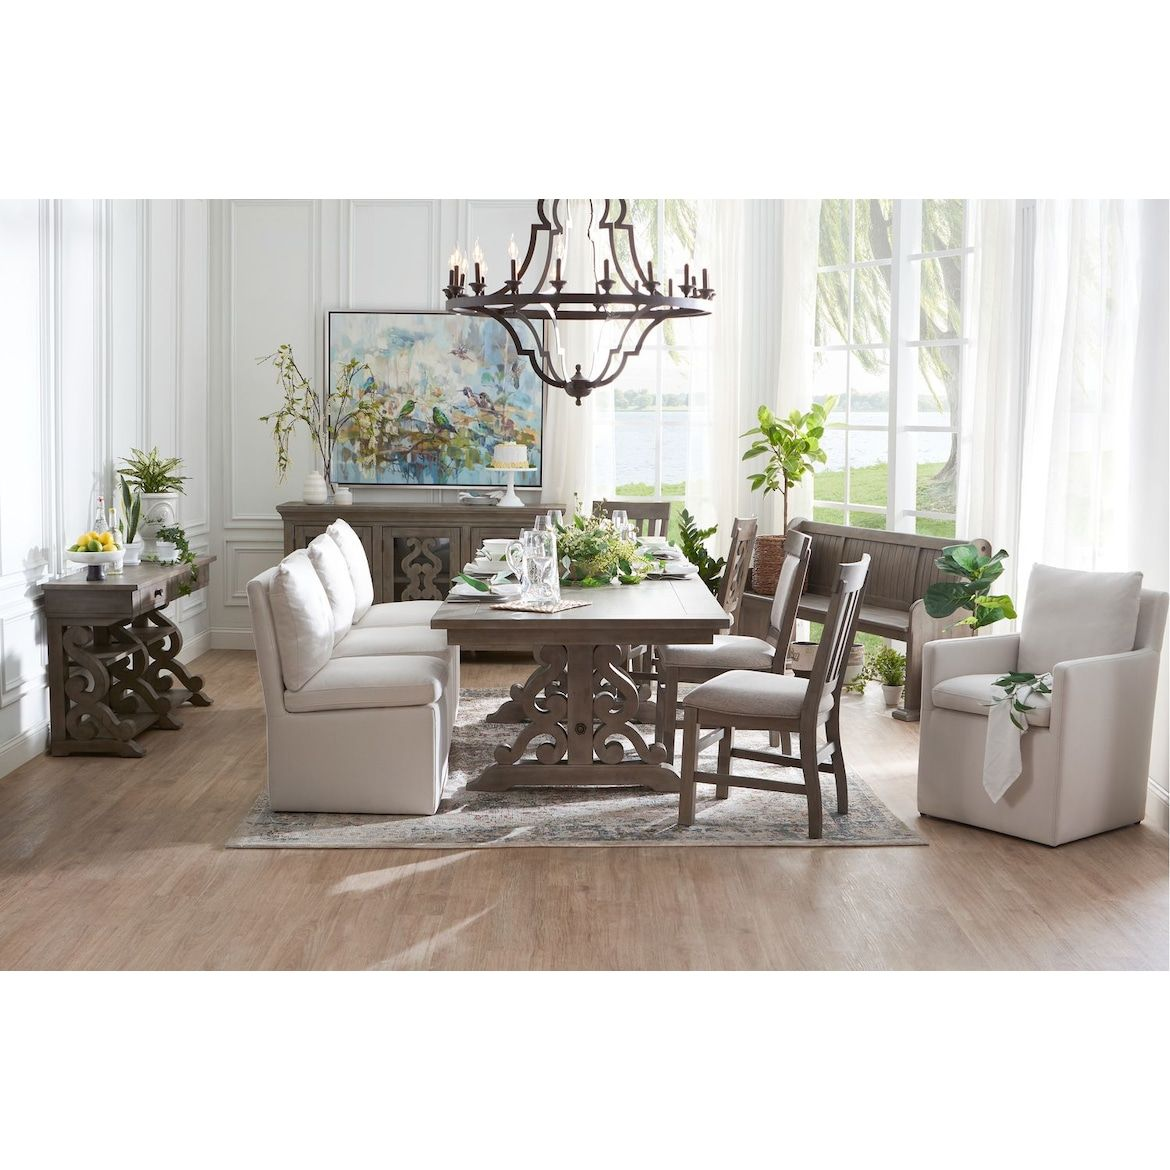 Plush Side Chair Ivory Value City Furniture And Mattresses Value City Furniture City Furniture Furniture